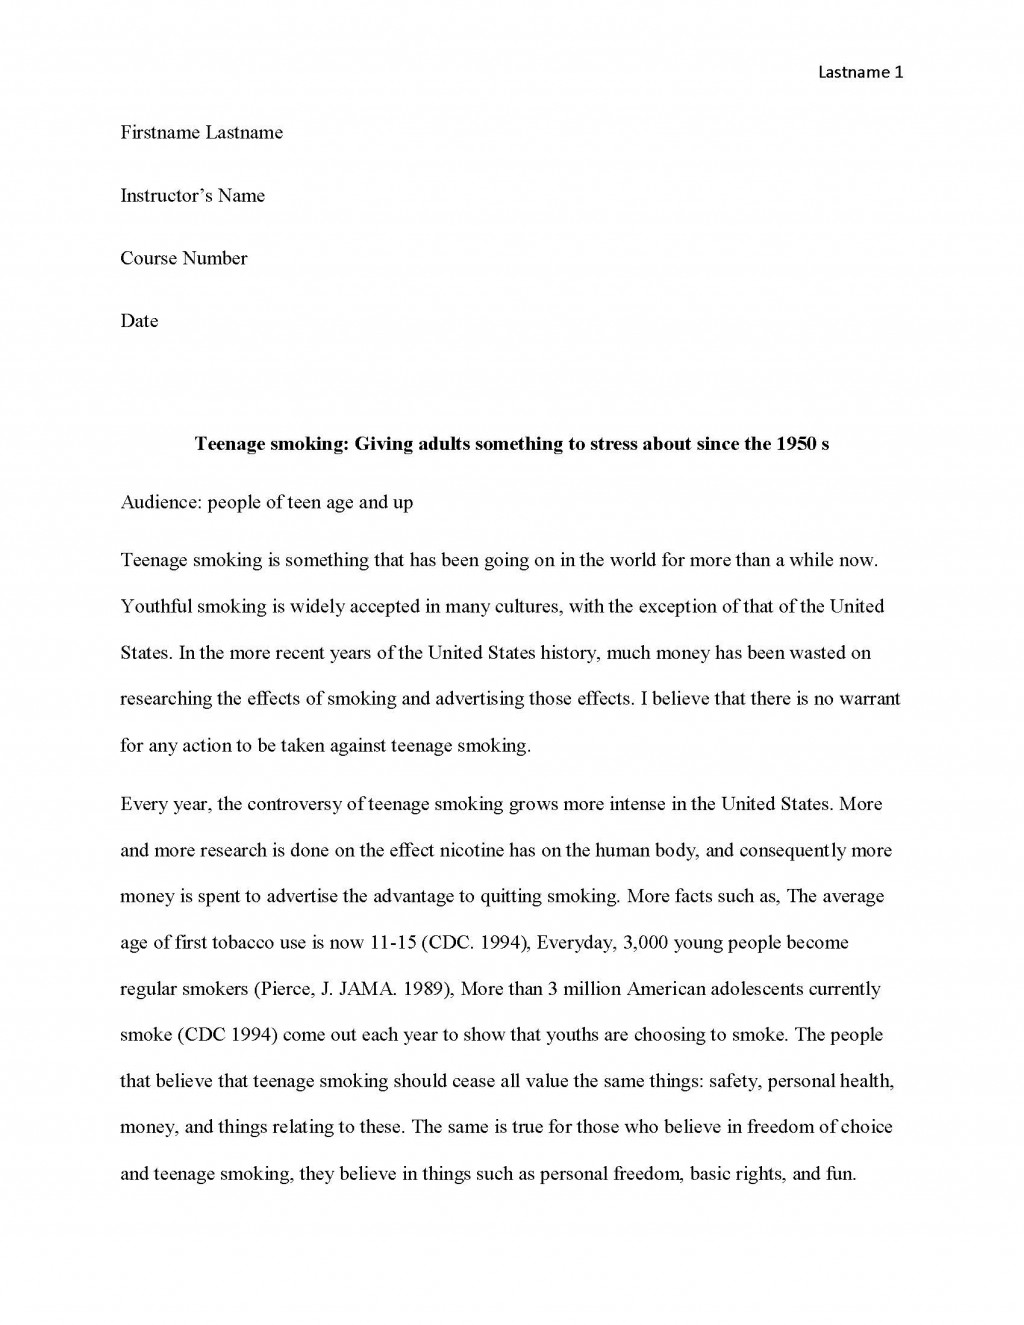 014 Teen Smoking Free Page 1 Essay Example Scholarship Stunning Sample Samples For College Students Pdf About Why I Deserve The Large